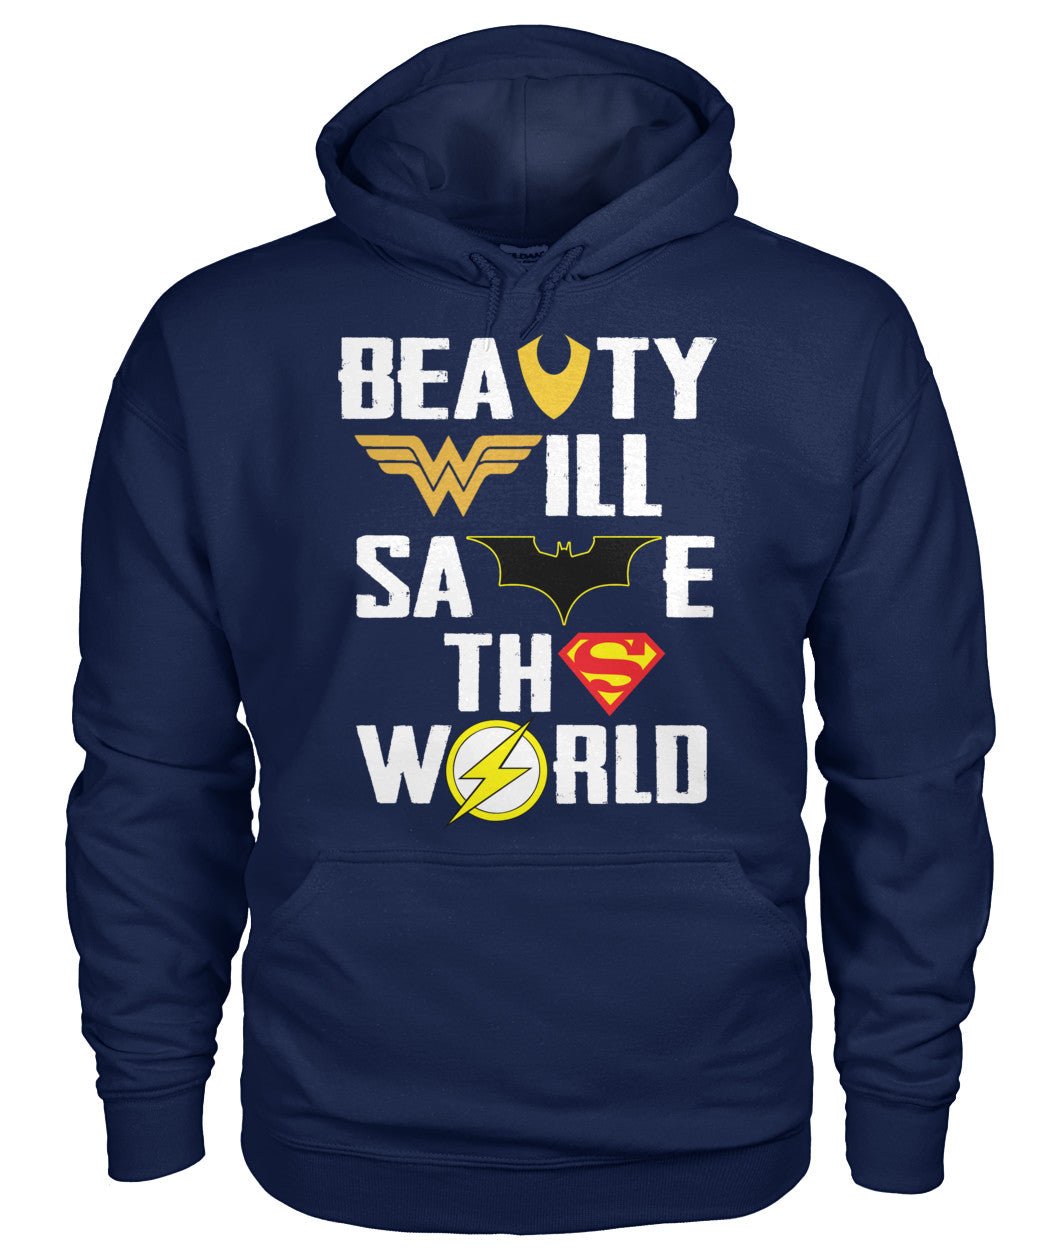 Beast and Beauty DC Shirt 2018-Short Sleeves - TEEHOT.COM